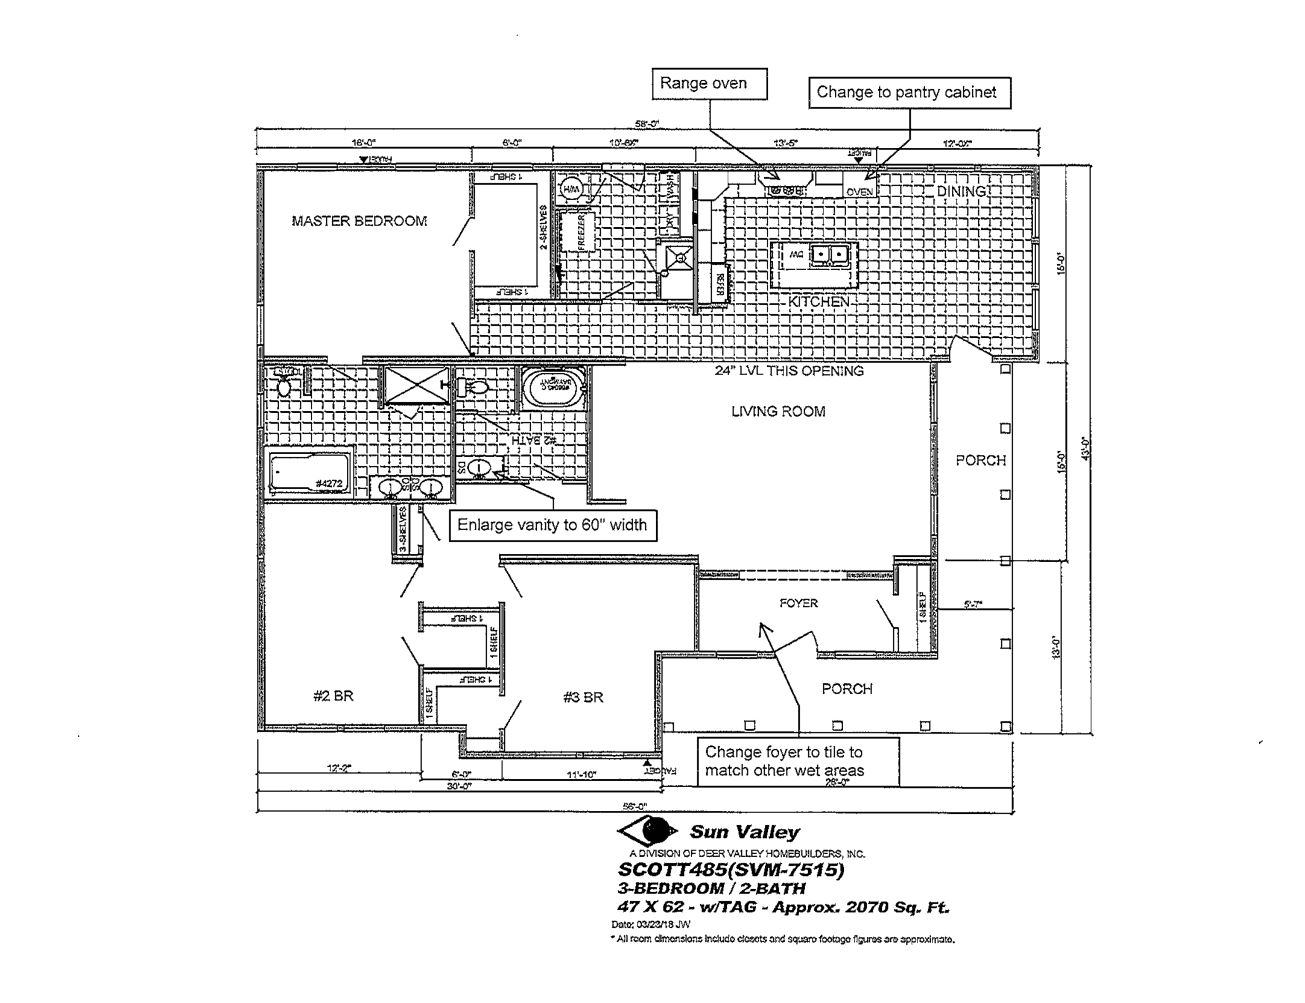 Floor Plan for house model Sequoia by Pratt from Tyler Texas